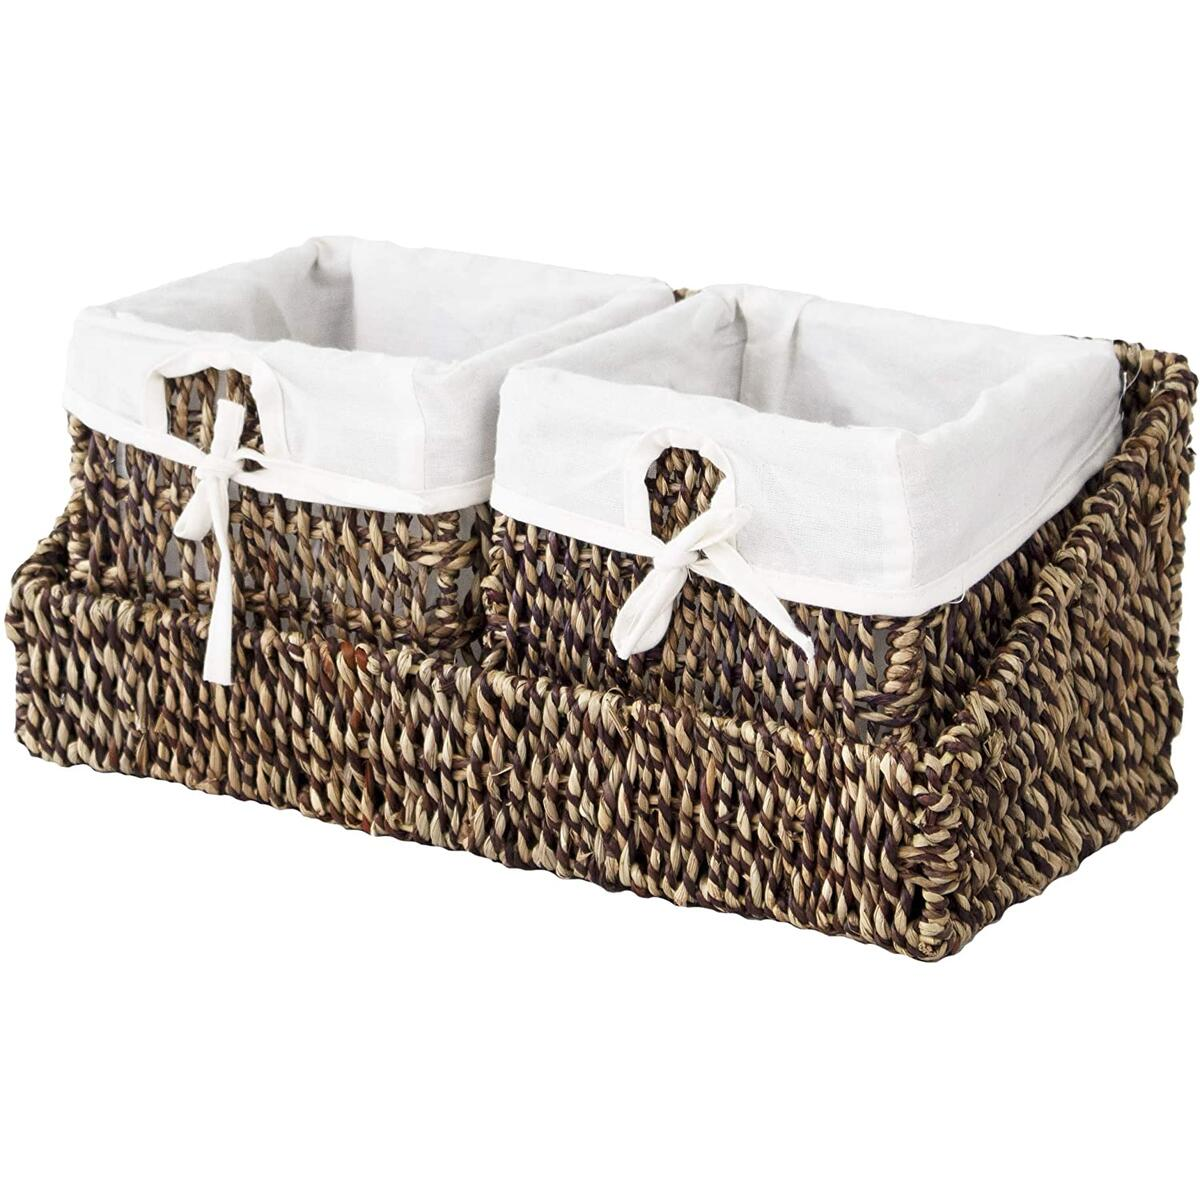 Seagrass Wall Hanging Wicker Shelf Storage Baskets with Wall Mount Tray and Removable Liners, Nesting Wall Organisation Container Bins (2 Baskets Brown Color with Tray)